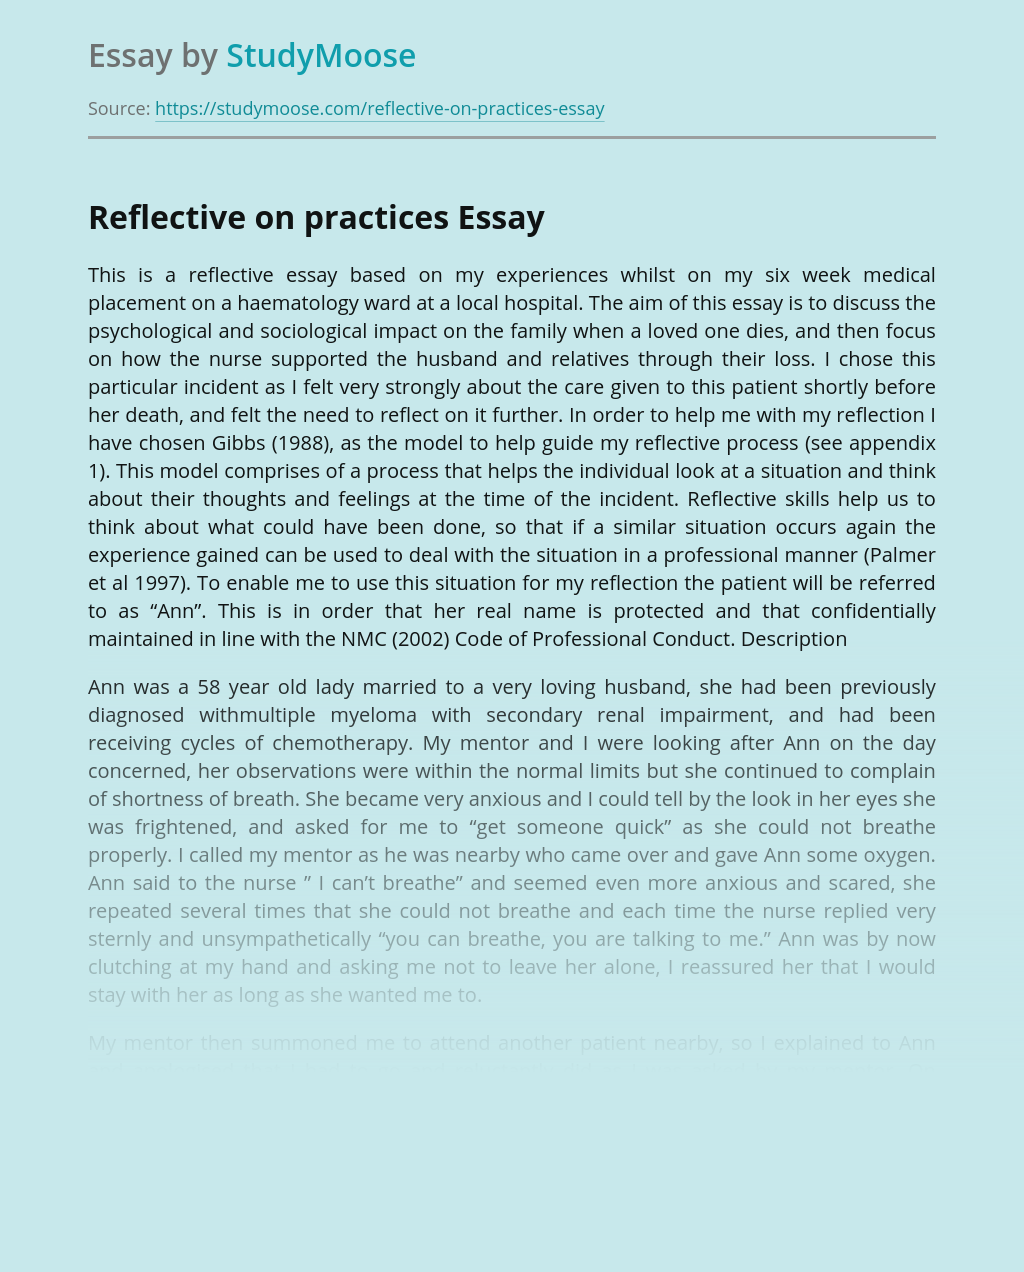 Reflective on practices